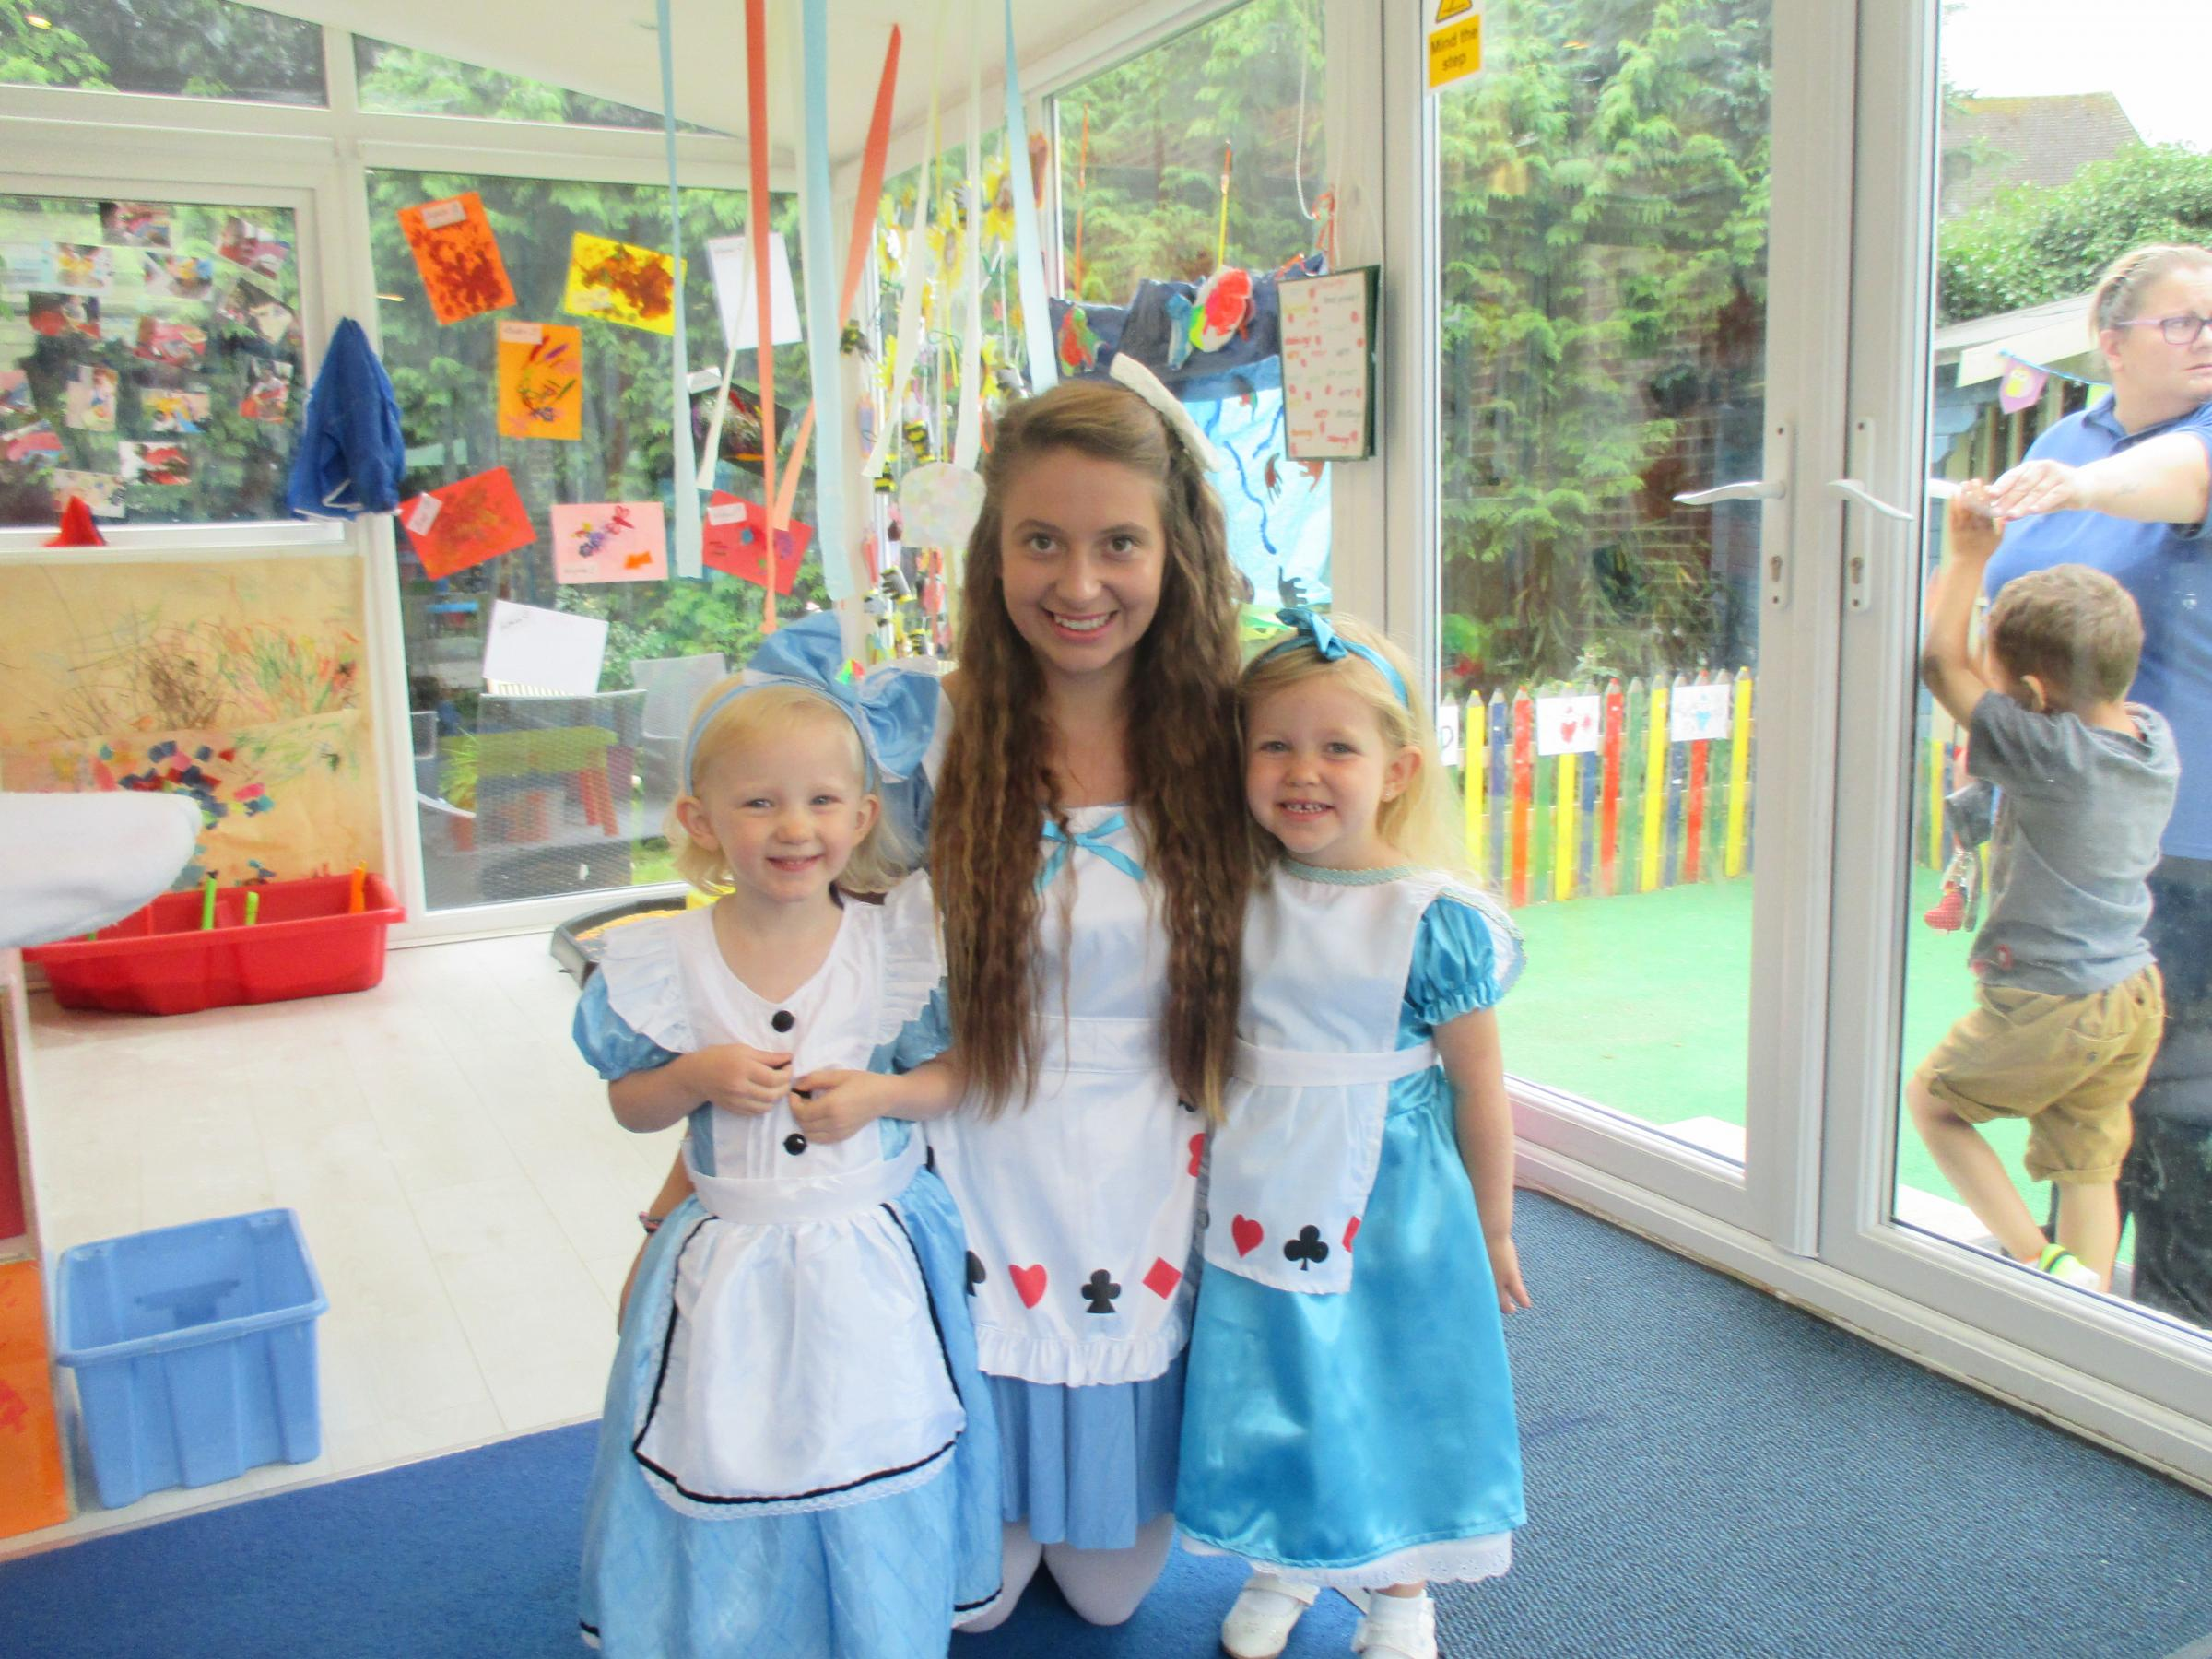 Nursery celebrates 25 year anniversary with Alice in Wonderland tea party